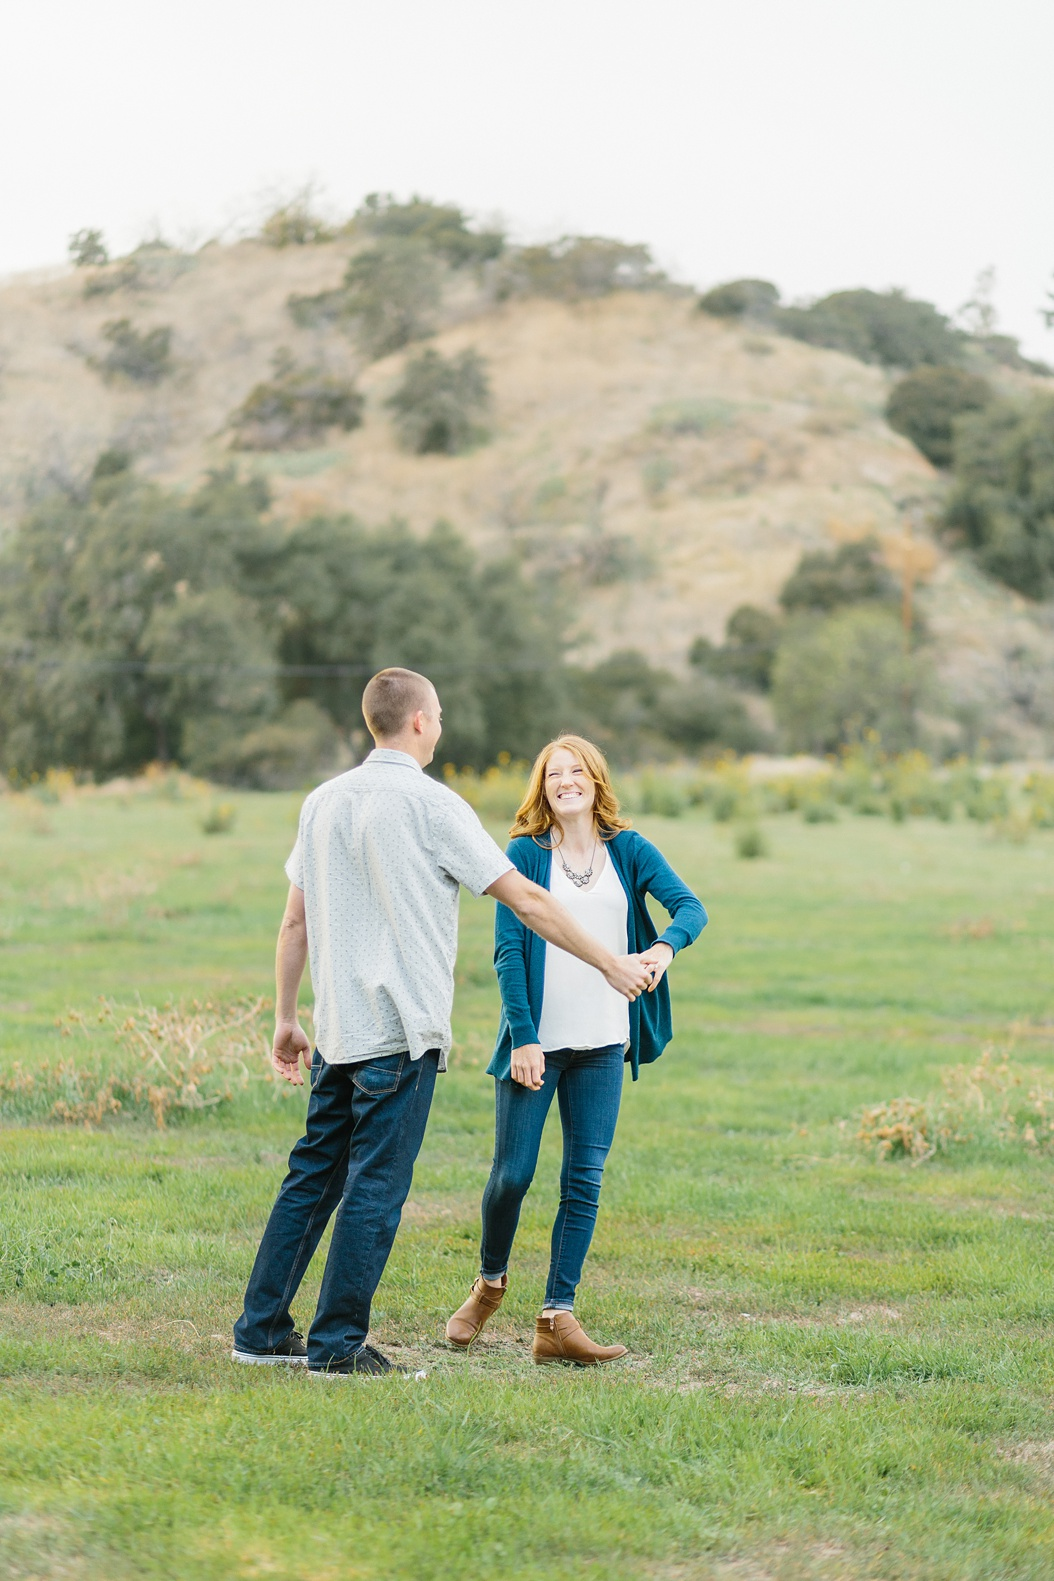 Open Field Engagement Session Near Los Angeles (20)